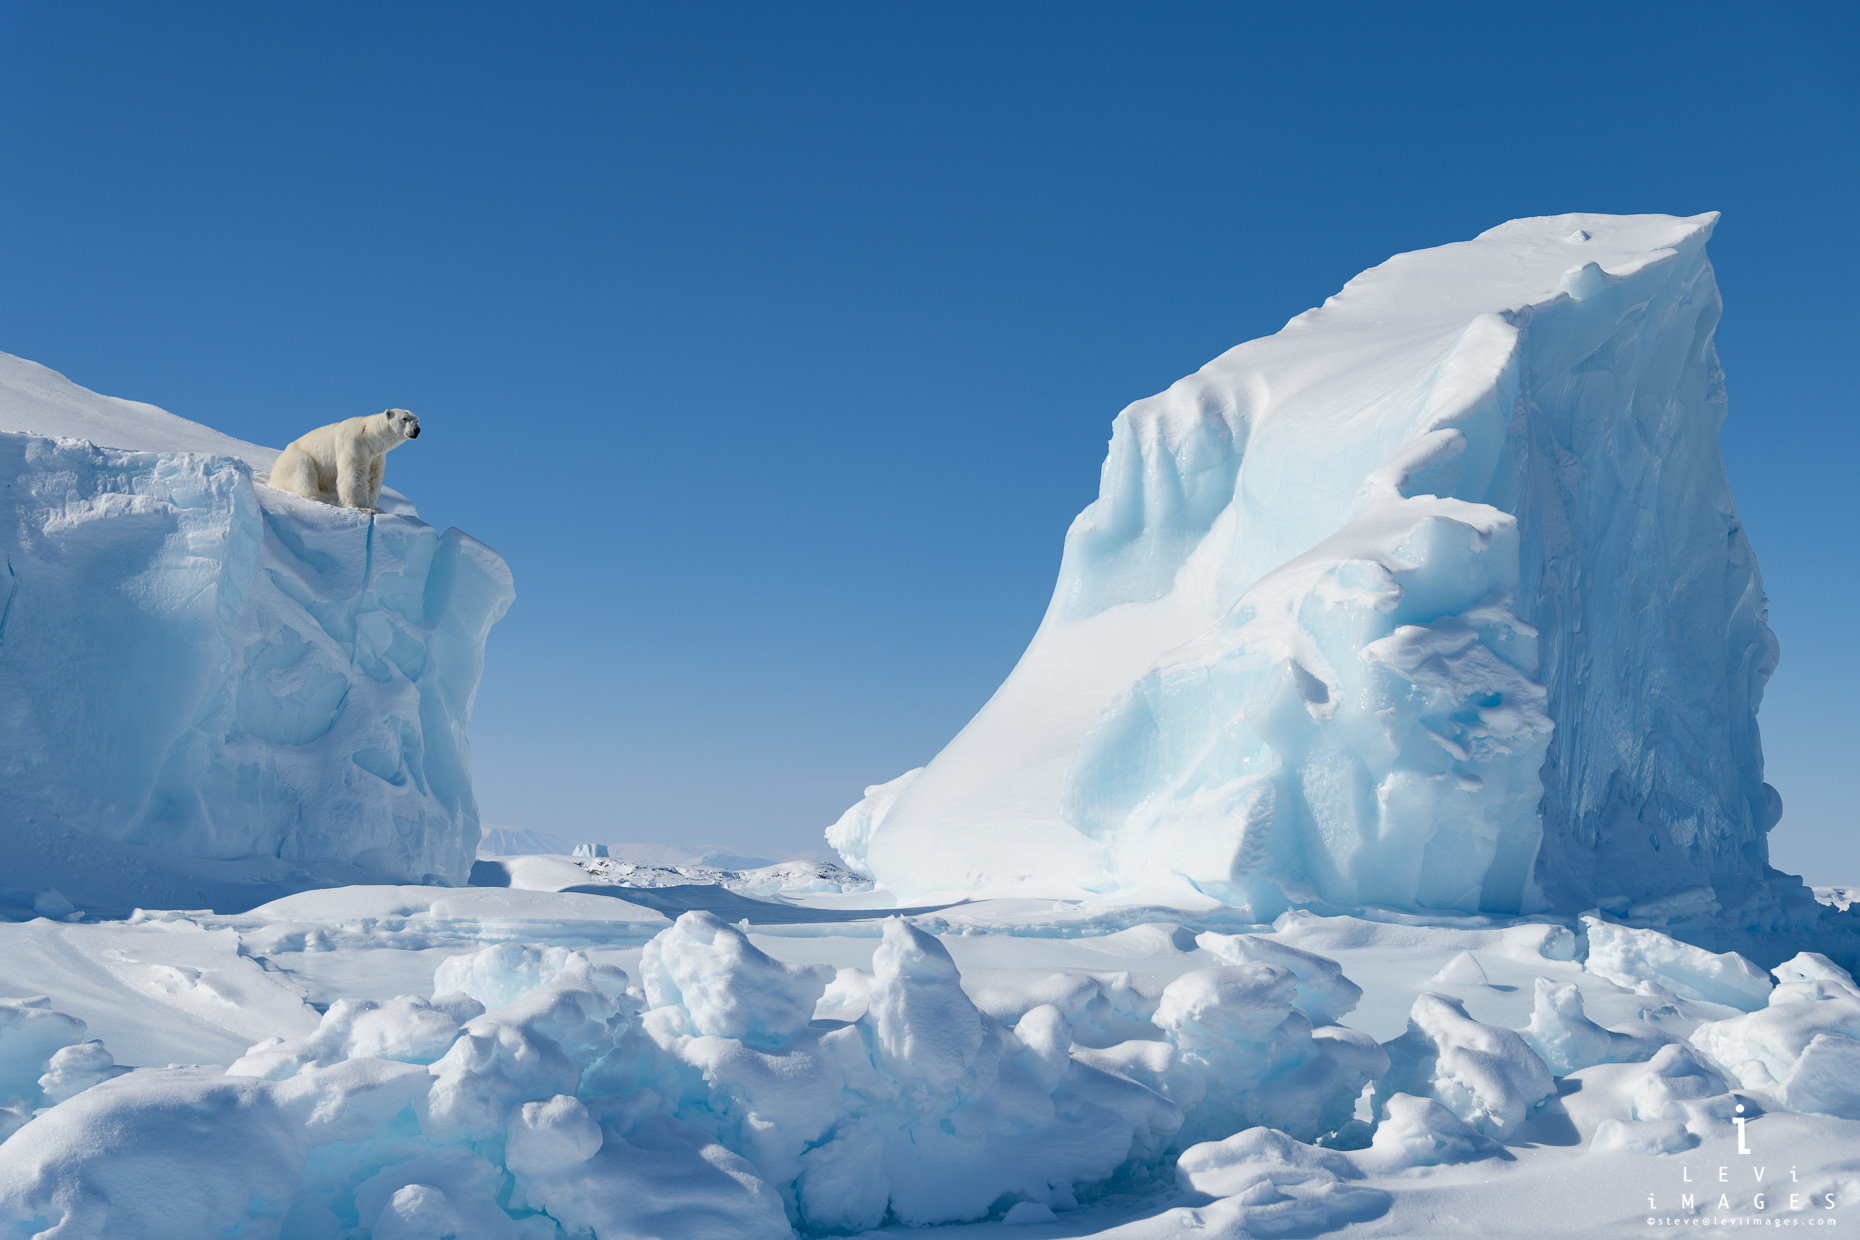 Polar bear (Ursus maritimus) looks out from iceberg in surreal winter environment. Baffin Island, Nunavut,Canada